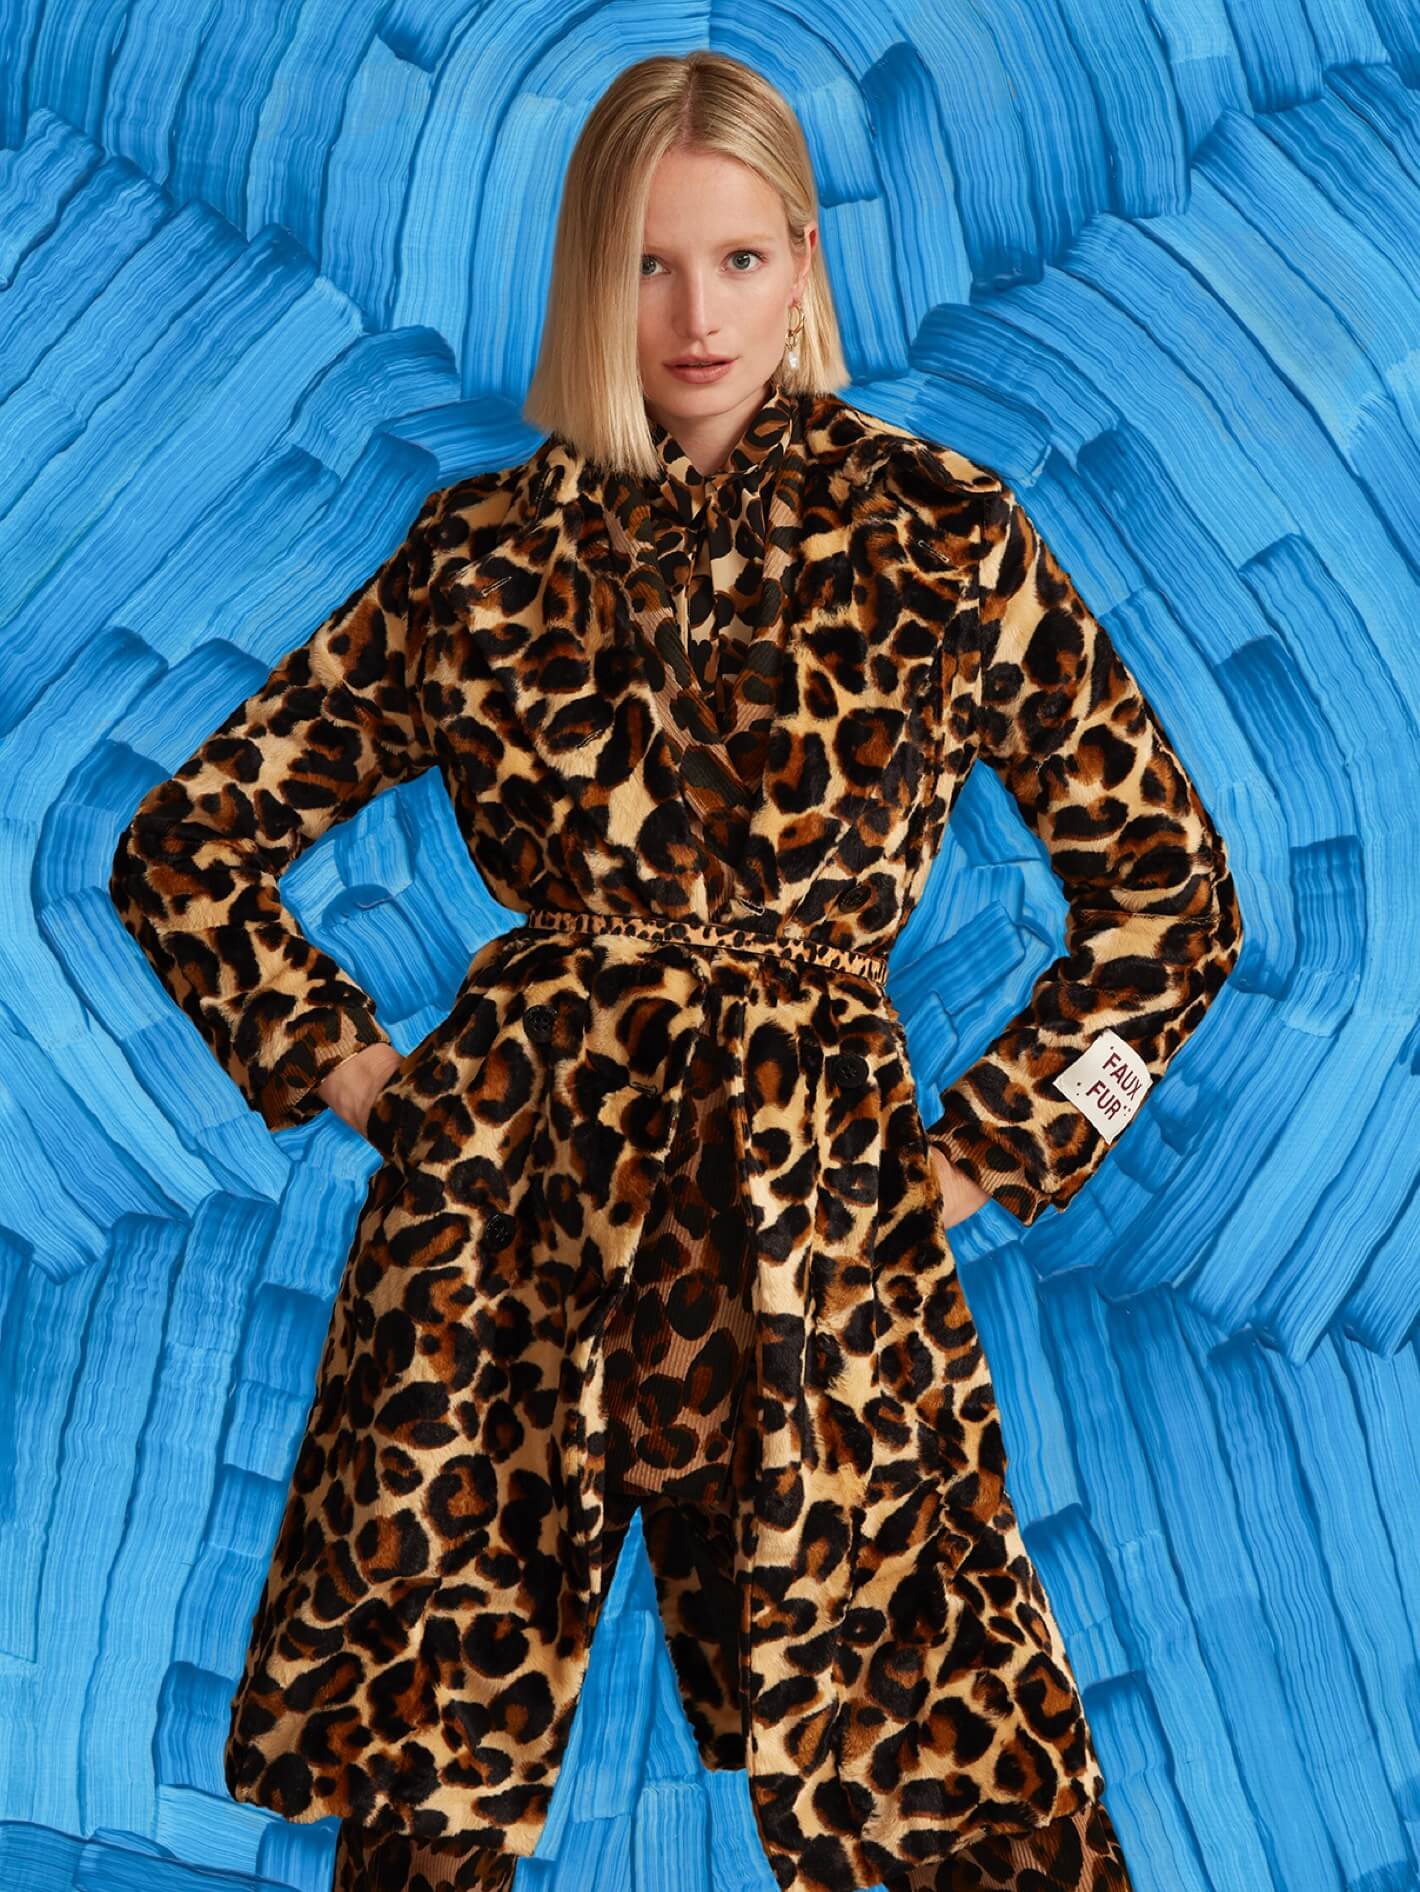 Leopard coat women